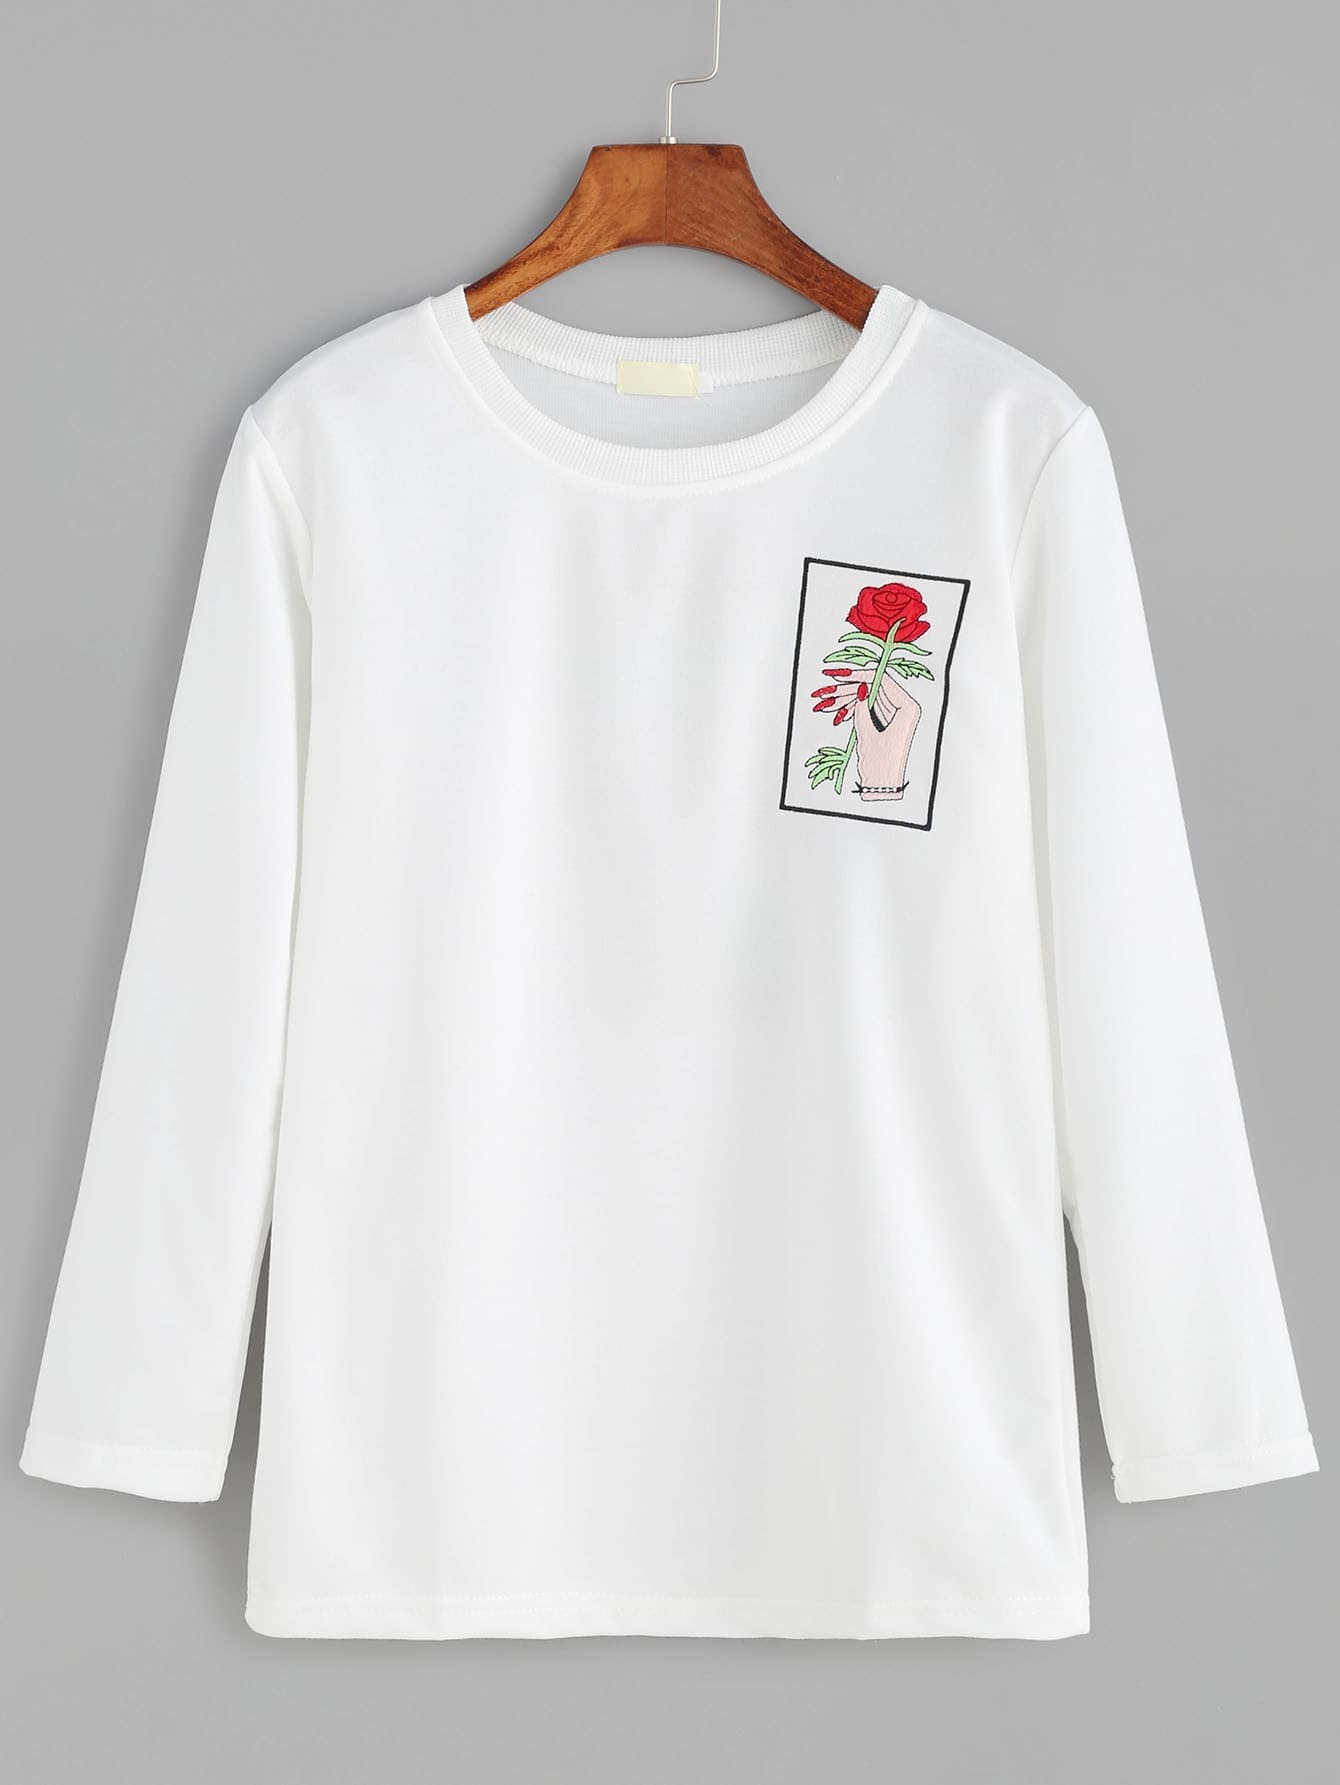 White hand and rose embroidery t shirt